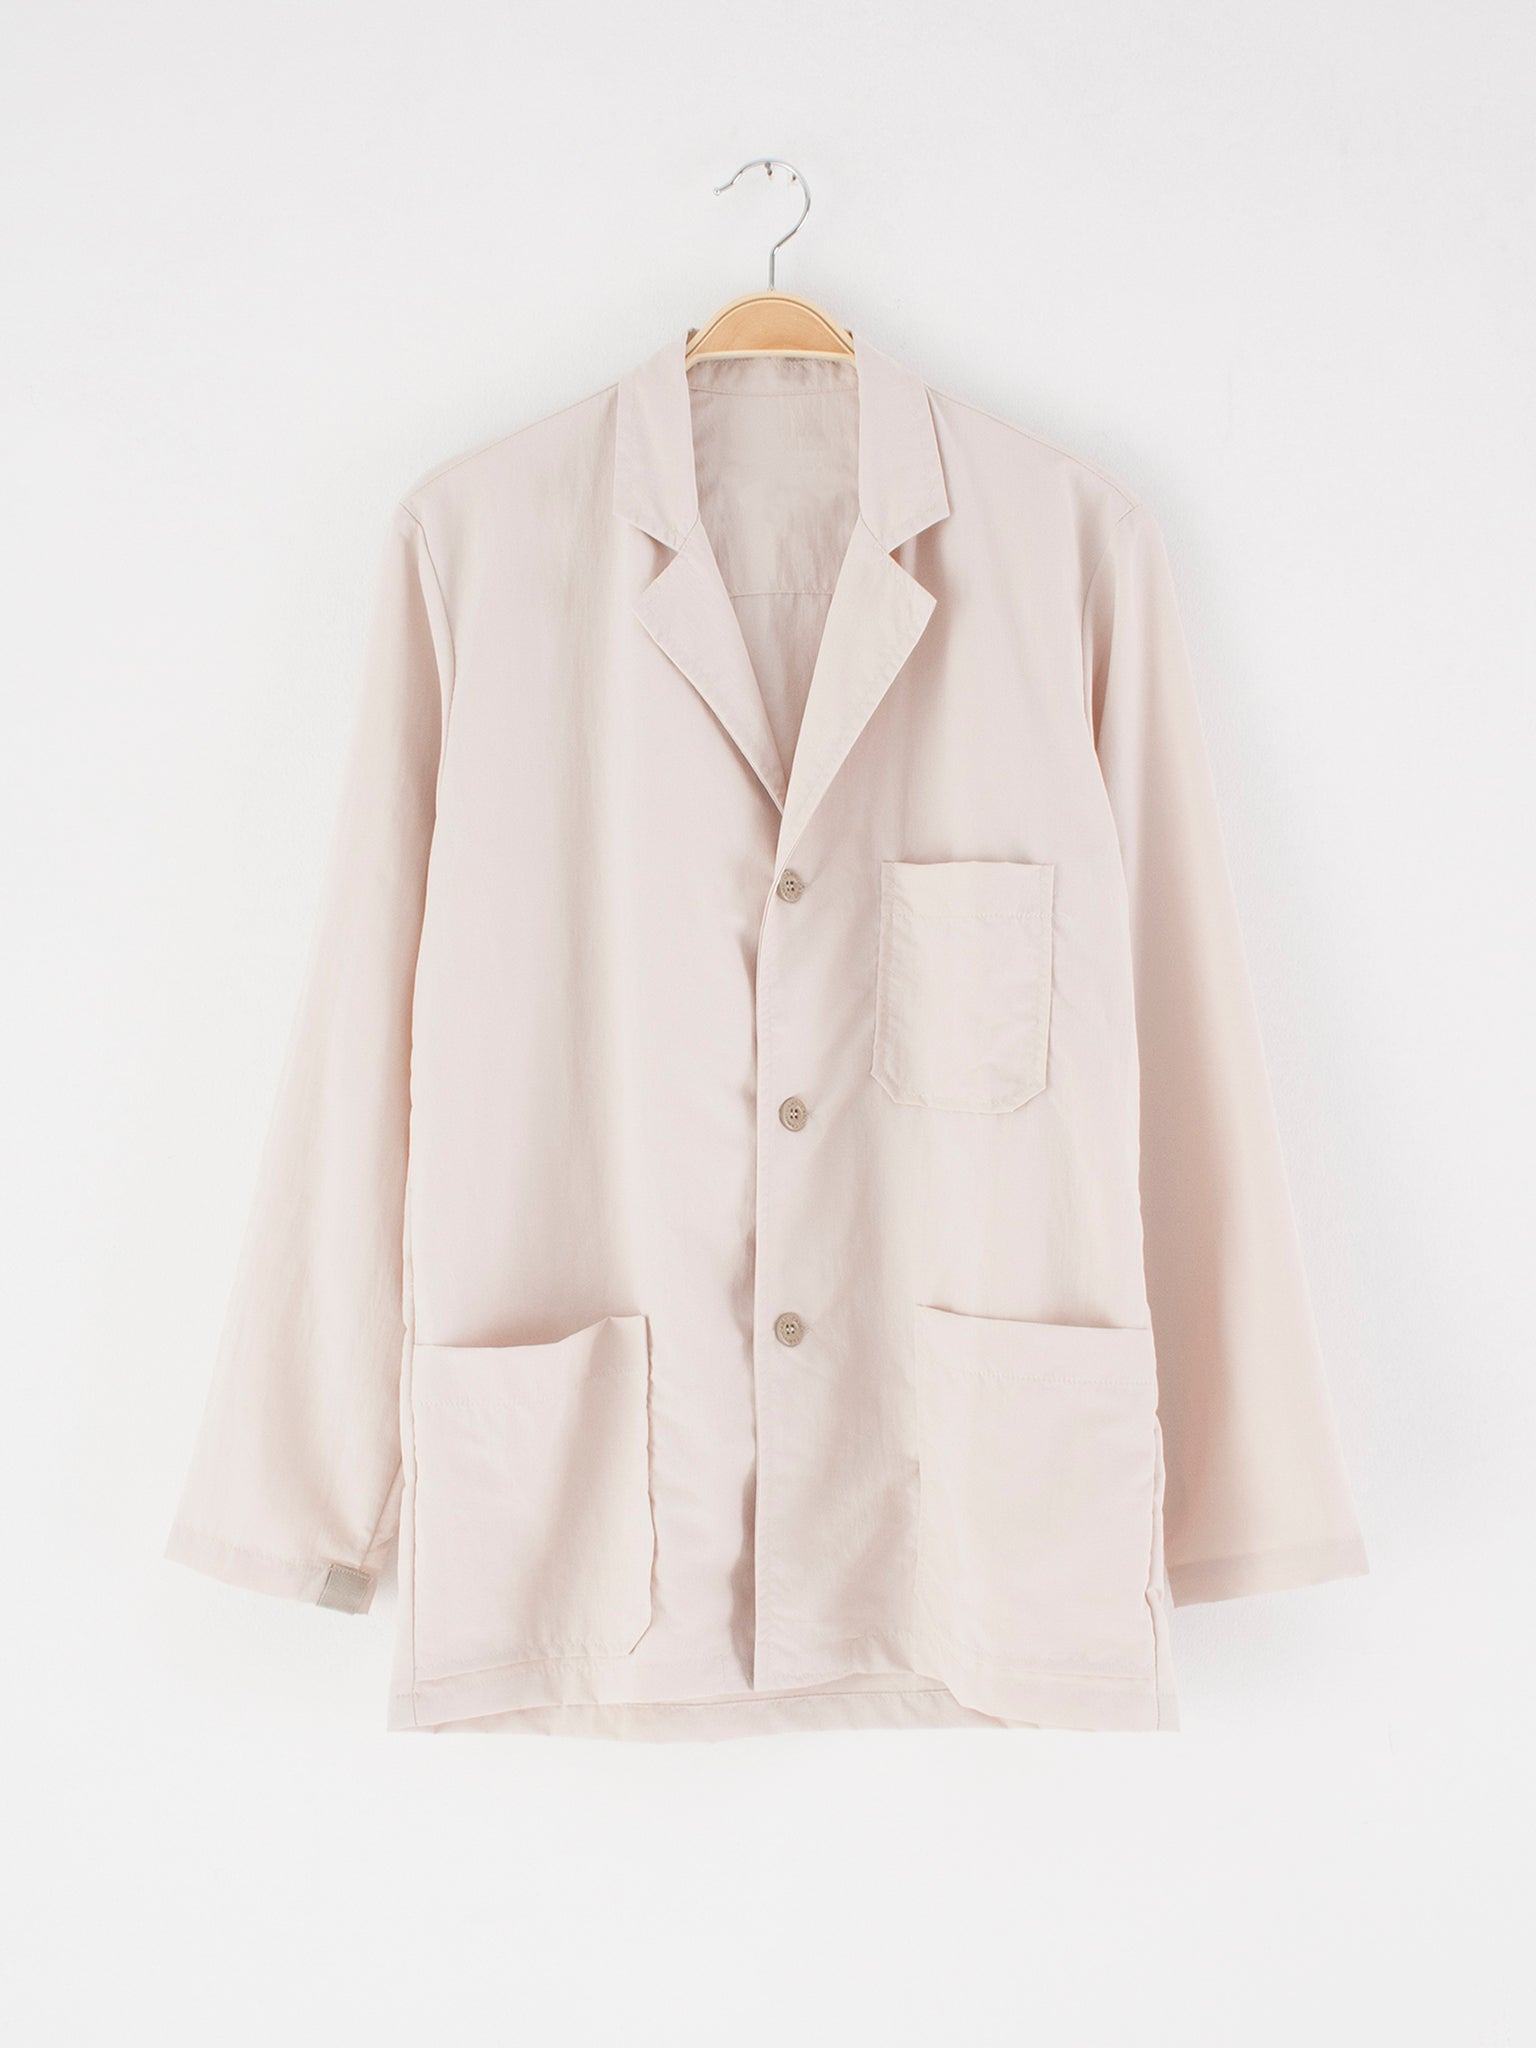 Furia blazer jacket, powder